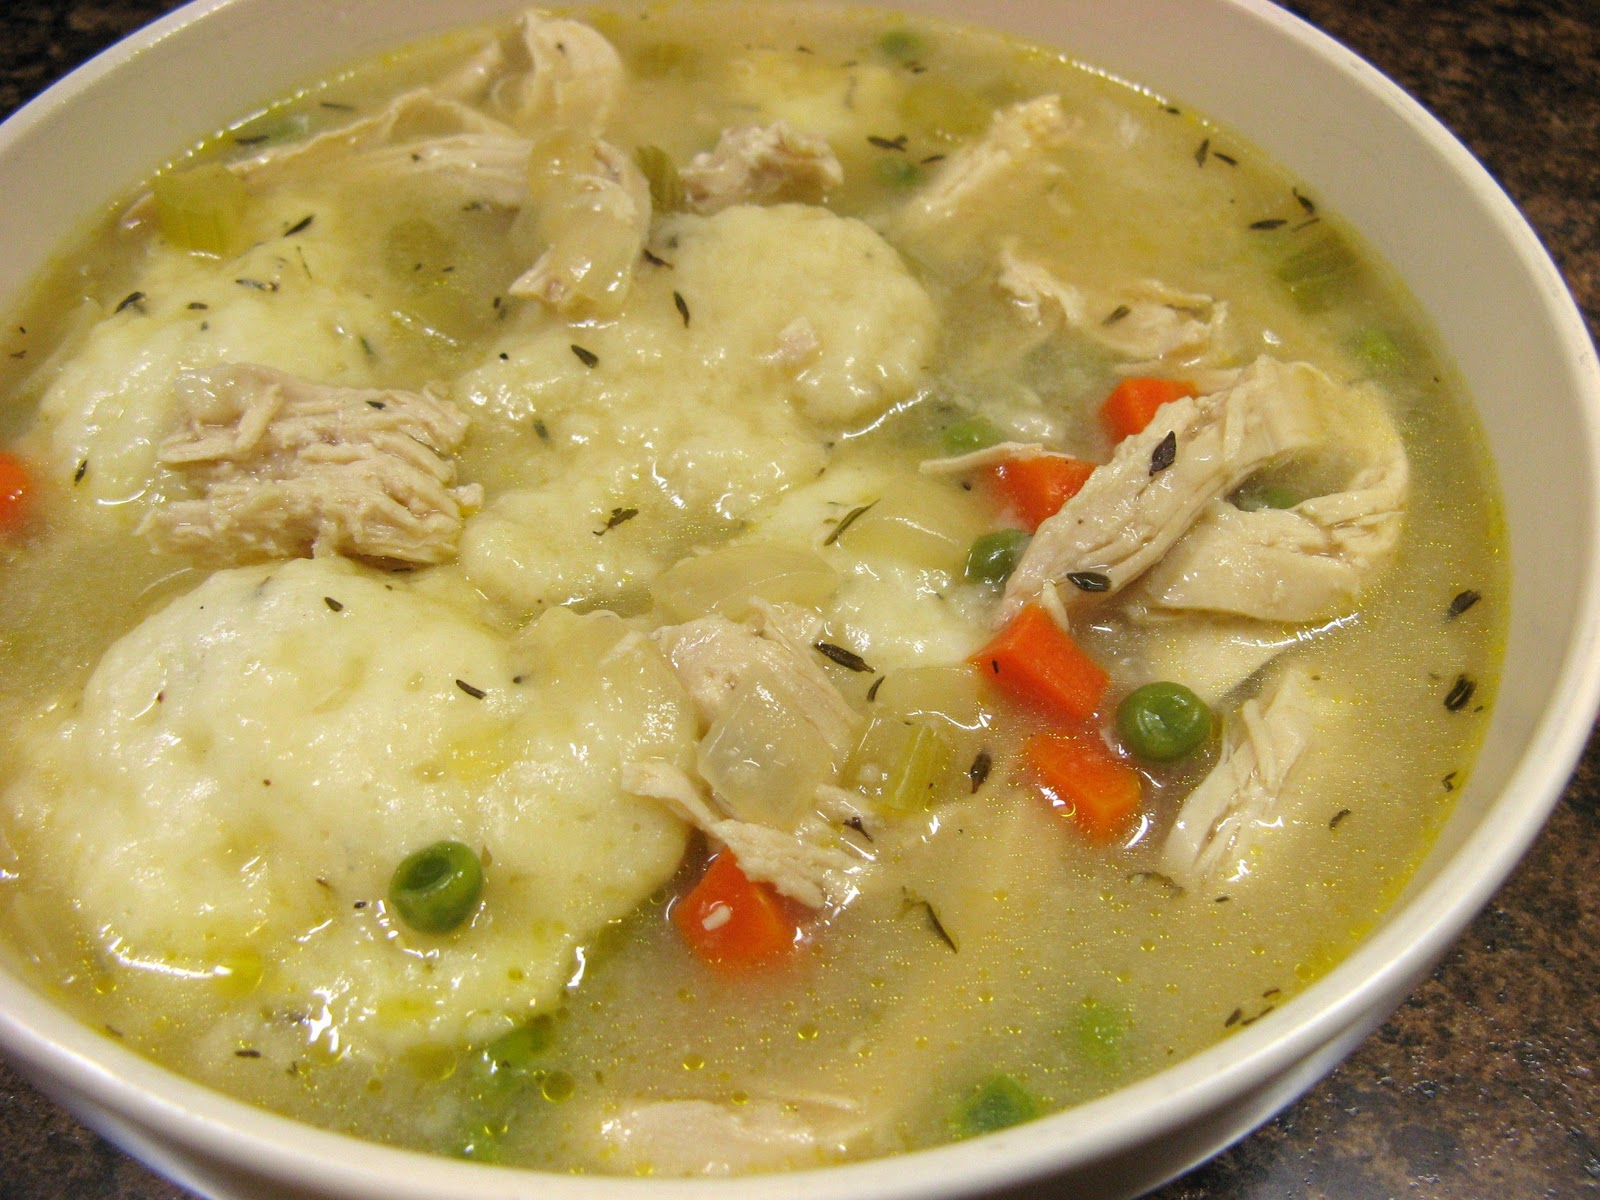 Texas Food And Travel: Easy southern style chicken and dumplings